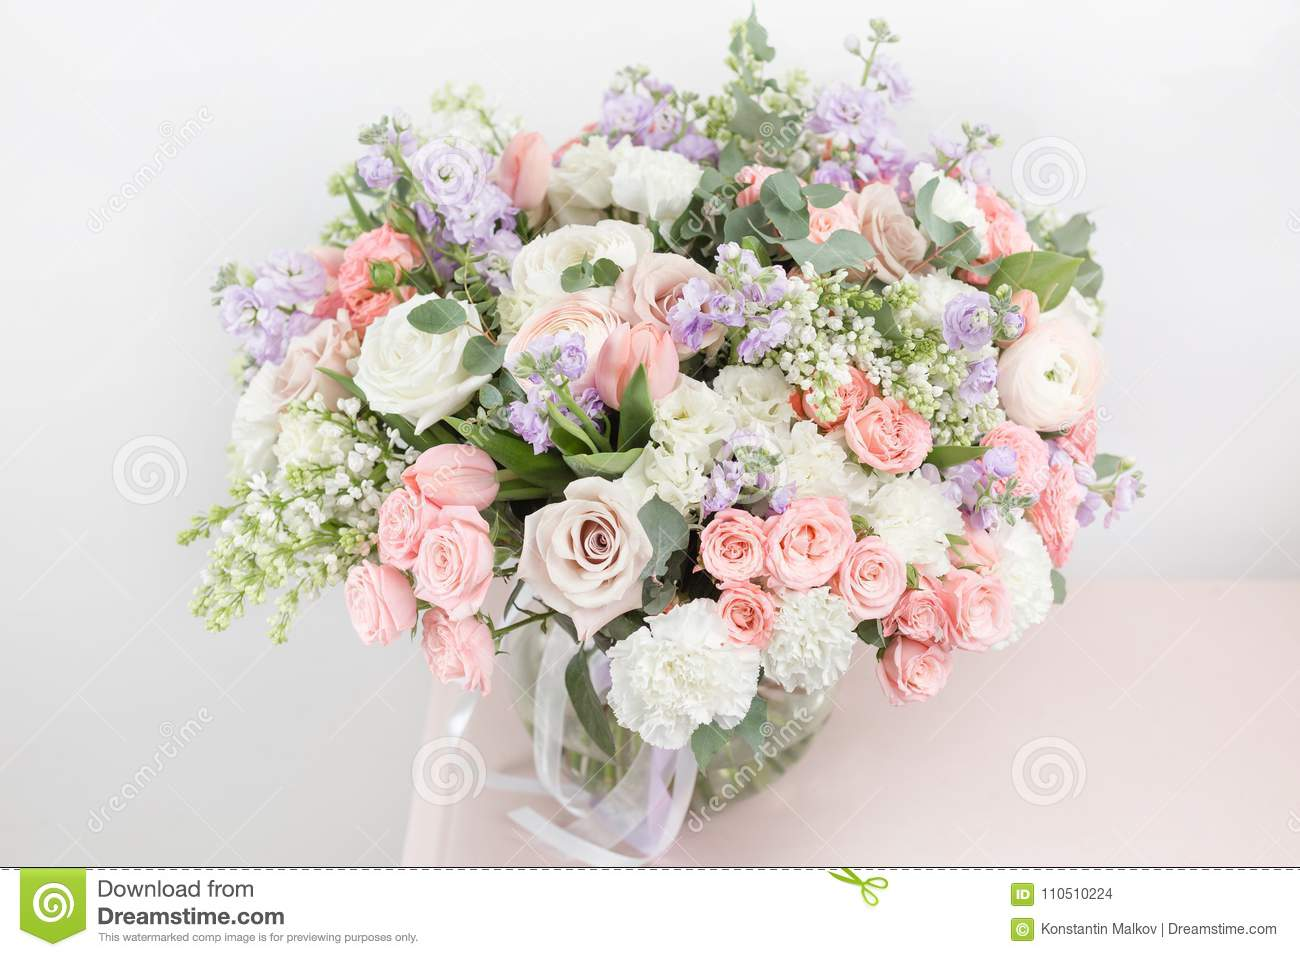 flower shop concept close up beautiful luxury bouquet of mixed flowers on wooden table. Black Bedroom Furniture Sets. Home Design Ideas